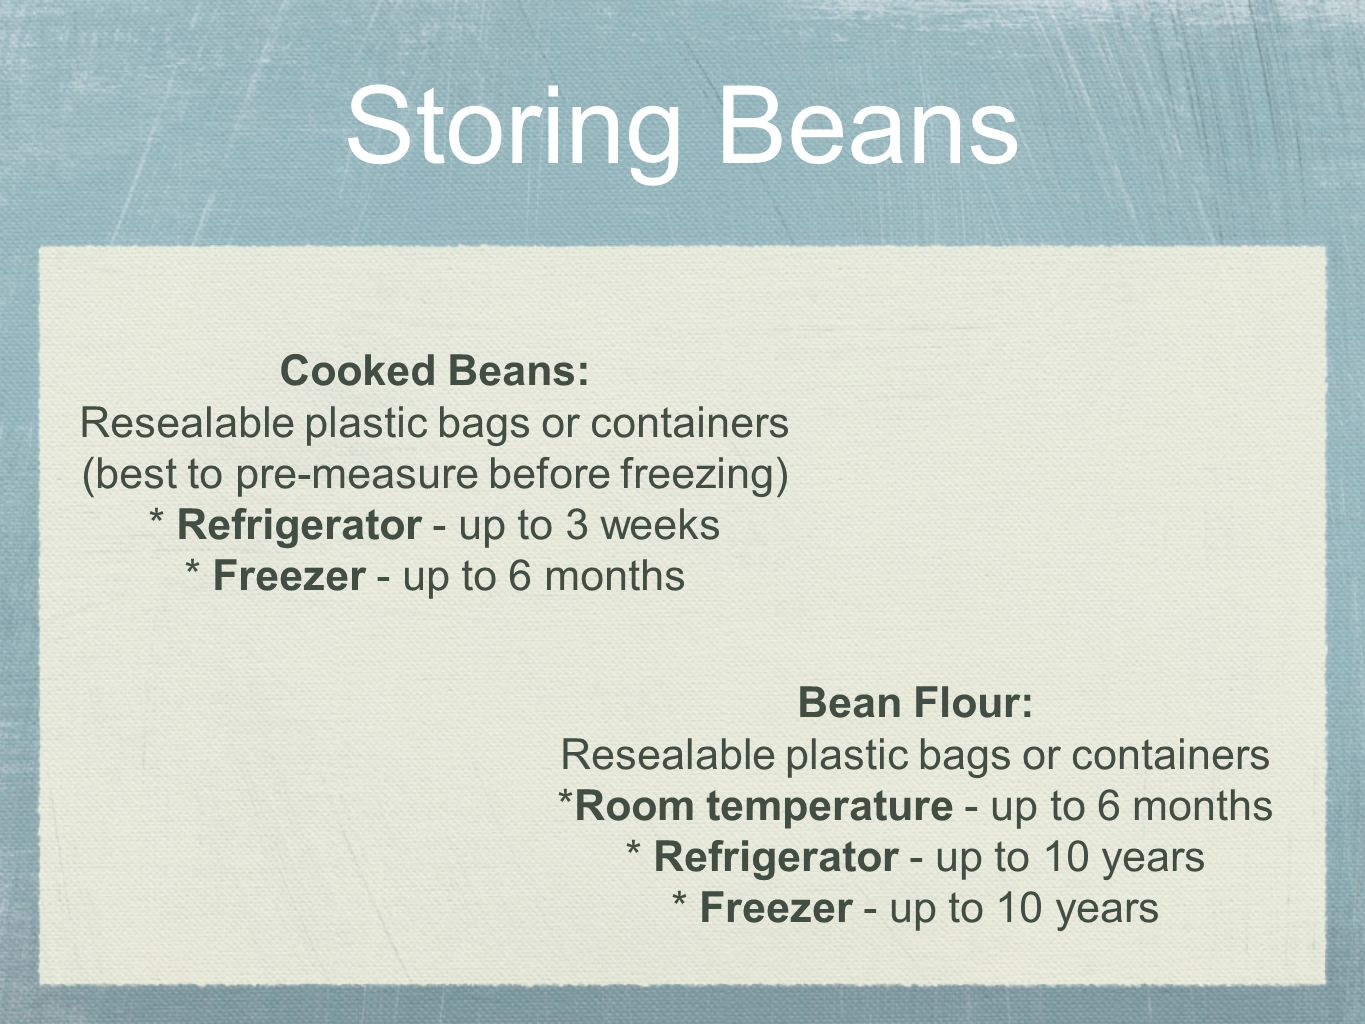 Storing Beans Cooked Beans: Resealable plastic bags or containers (best to pre-measure before freezing) * Refrigerator - up to 3 weeks * Freezer - up to 6 months Bean Flour: Resealable plastic bags or containers *Room temperature - up to 6 months * Refrigerator - up to 10 years * Freezer - up to 10 years